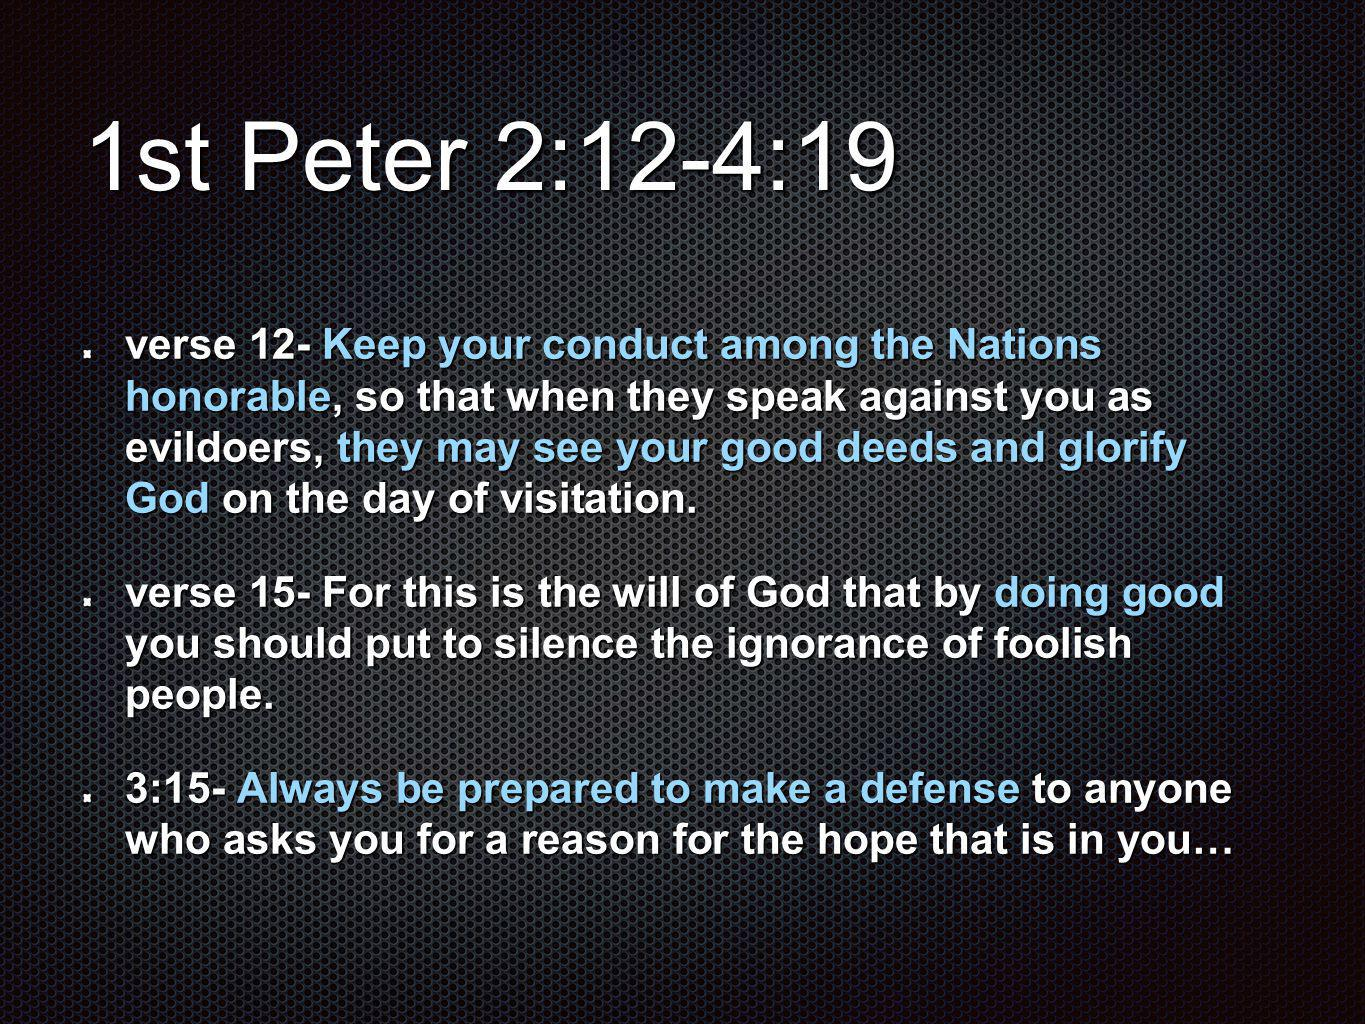 1st Peter 2:12-4:19 verse 12- Keep your conduct among the Nations honorable, so that when they speak against you as evildoers, they may see your good deeds and glorify God on the day of visitation.